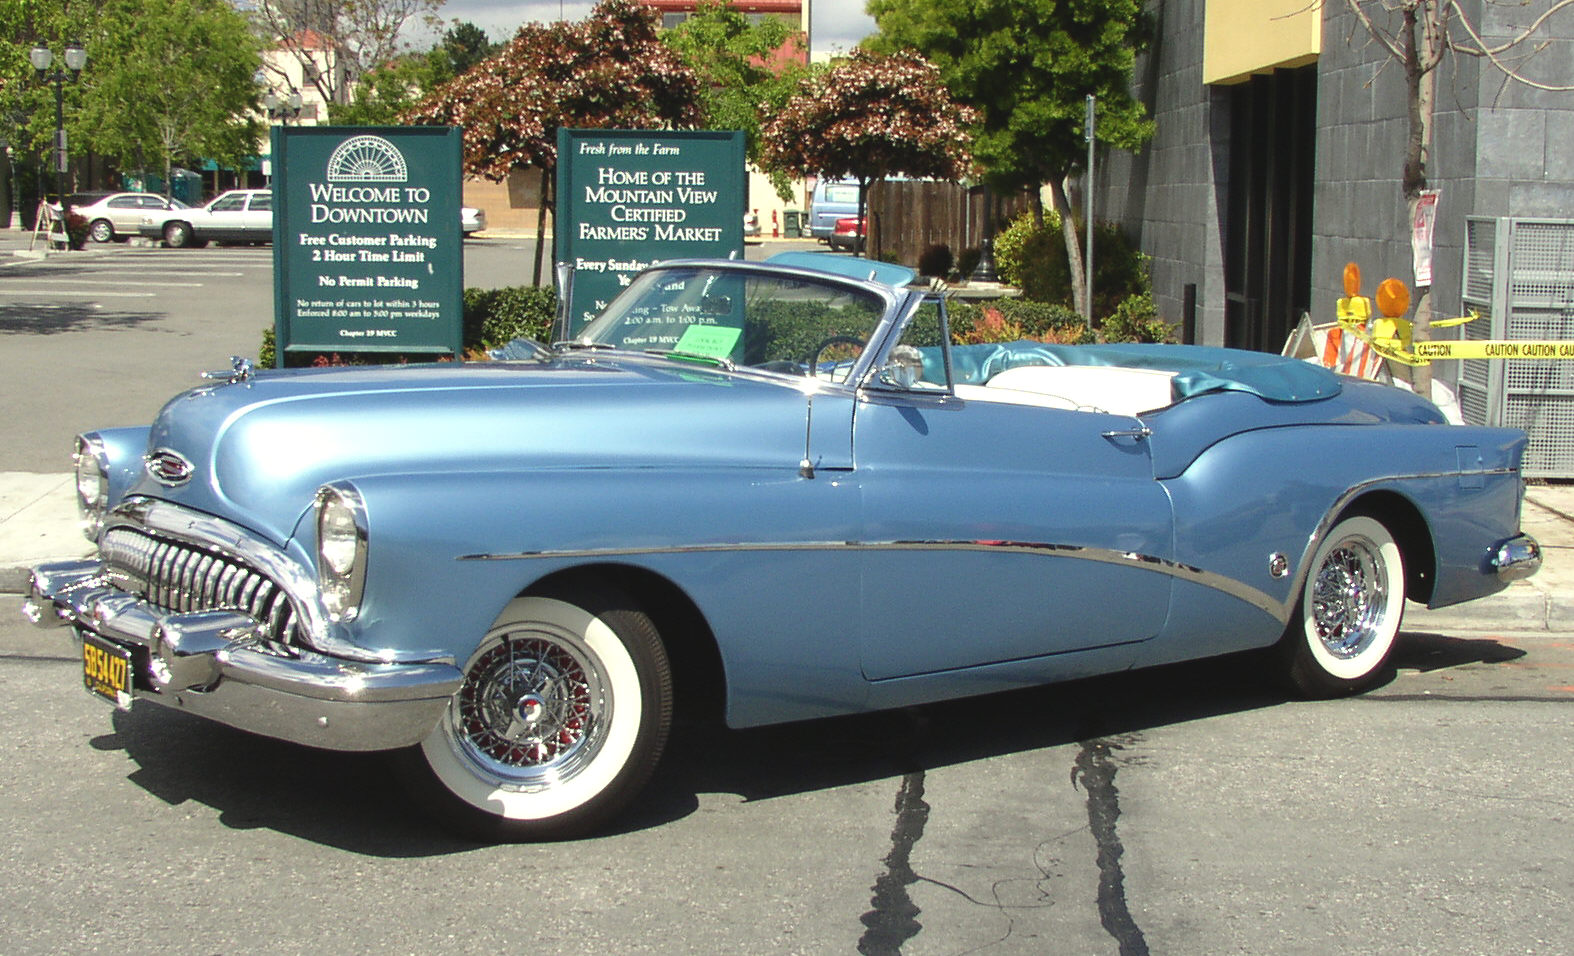 1953 Buick Roadmaster Riviera Images & Pictures - Becuo